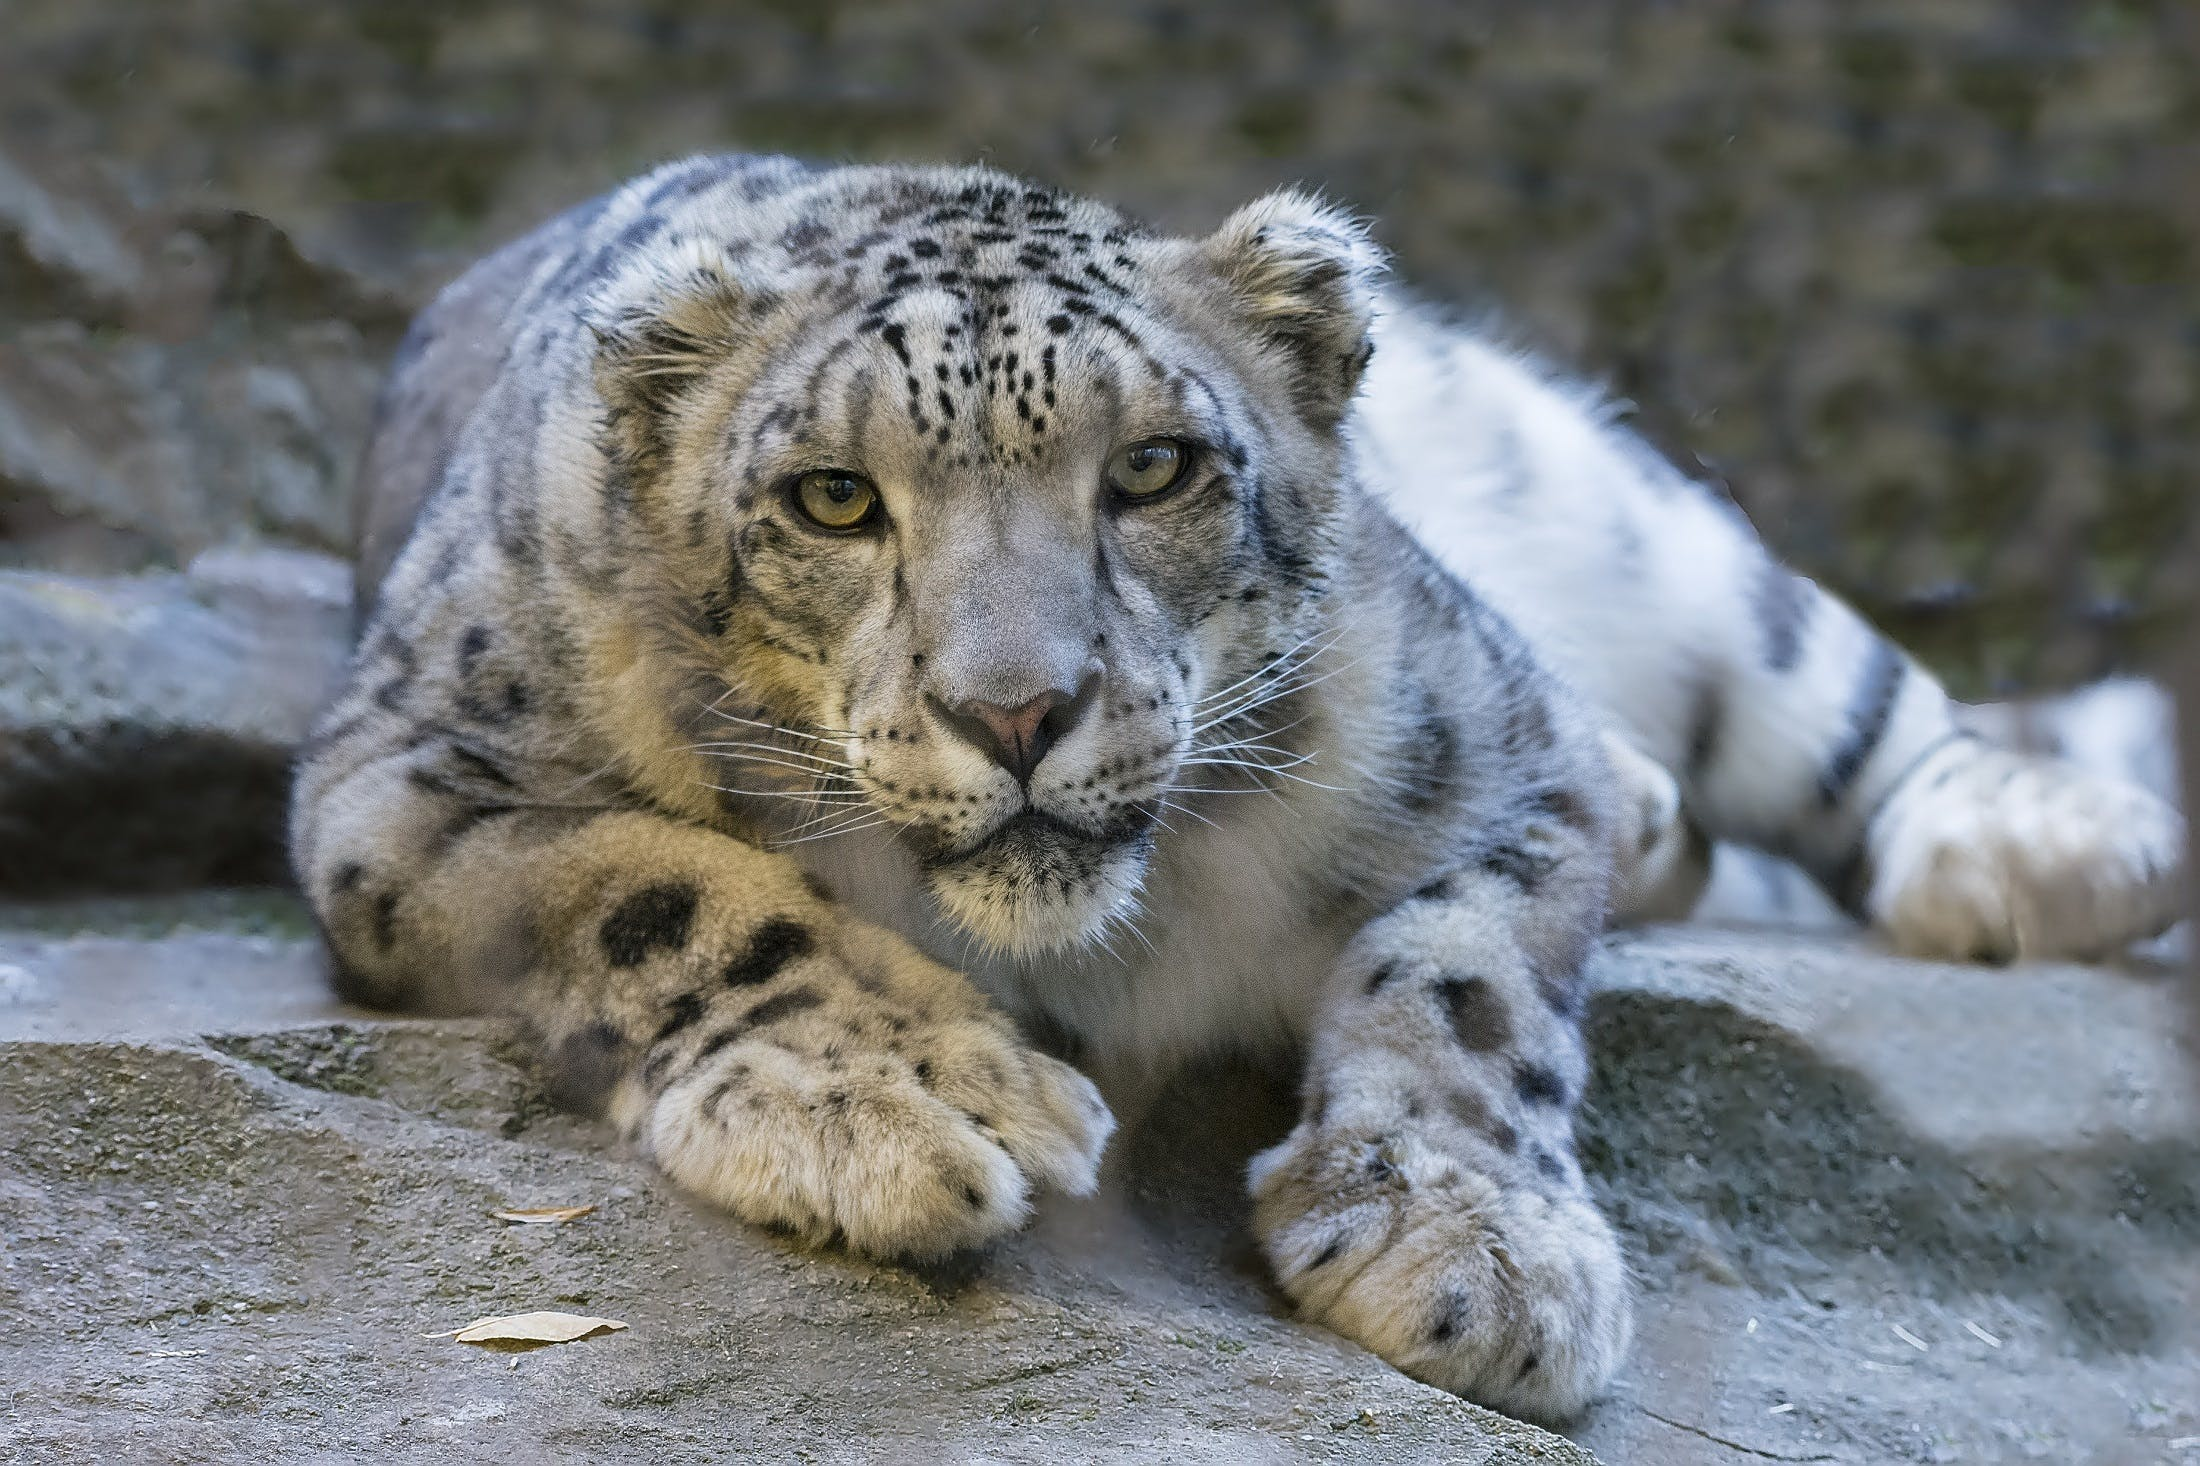 White Tiger on Grey Rock